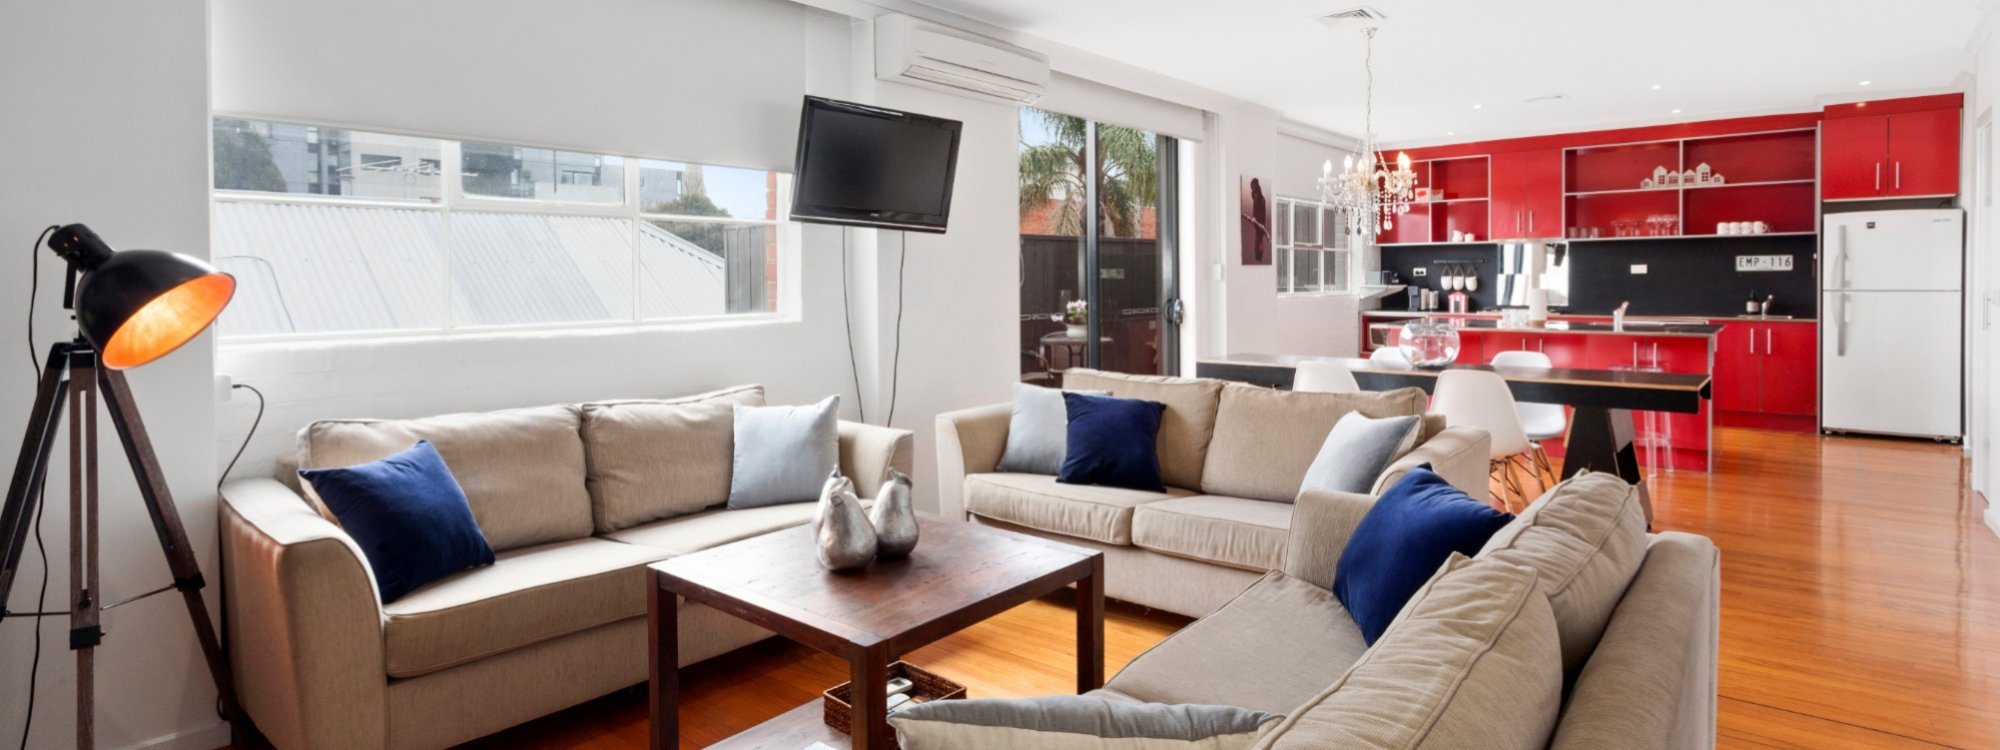 Manallack Apartments Olley - Melbourne - Living Area 2